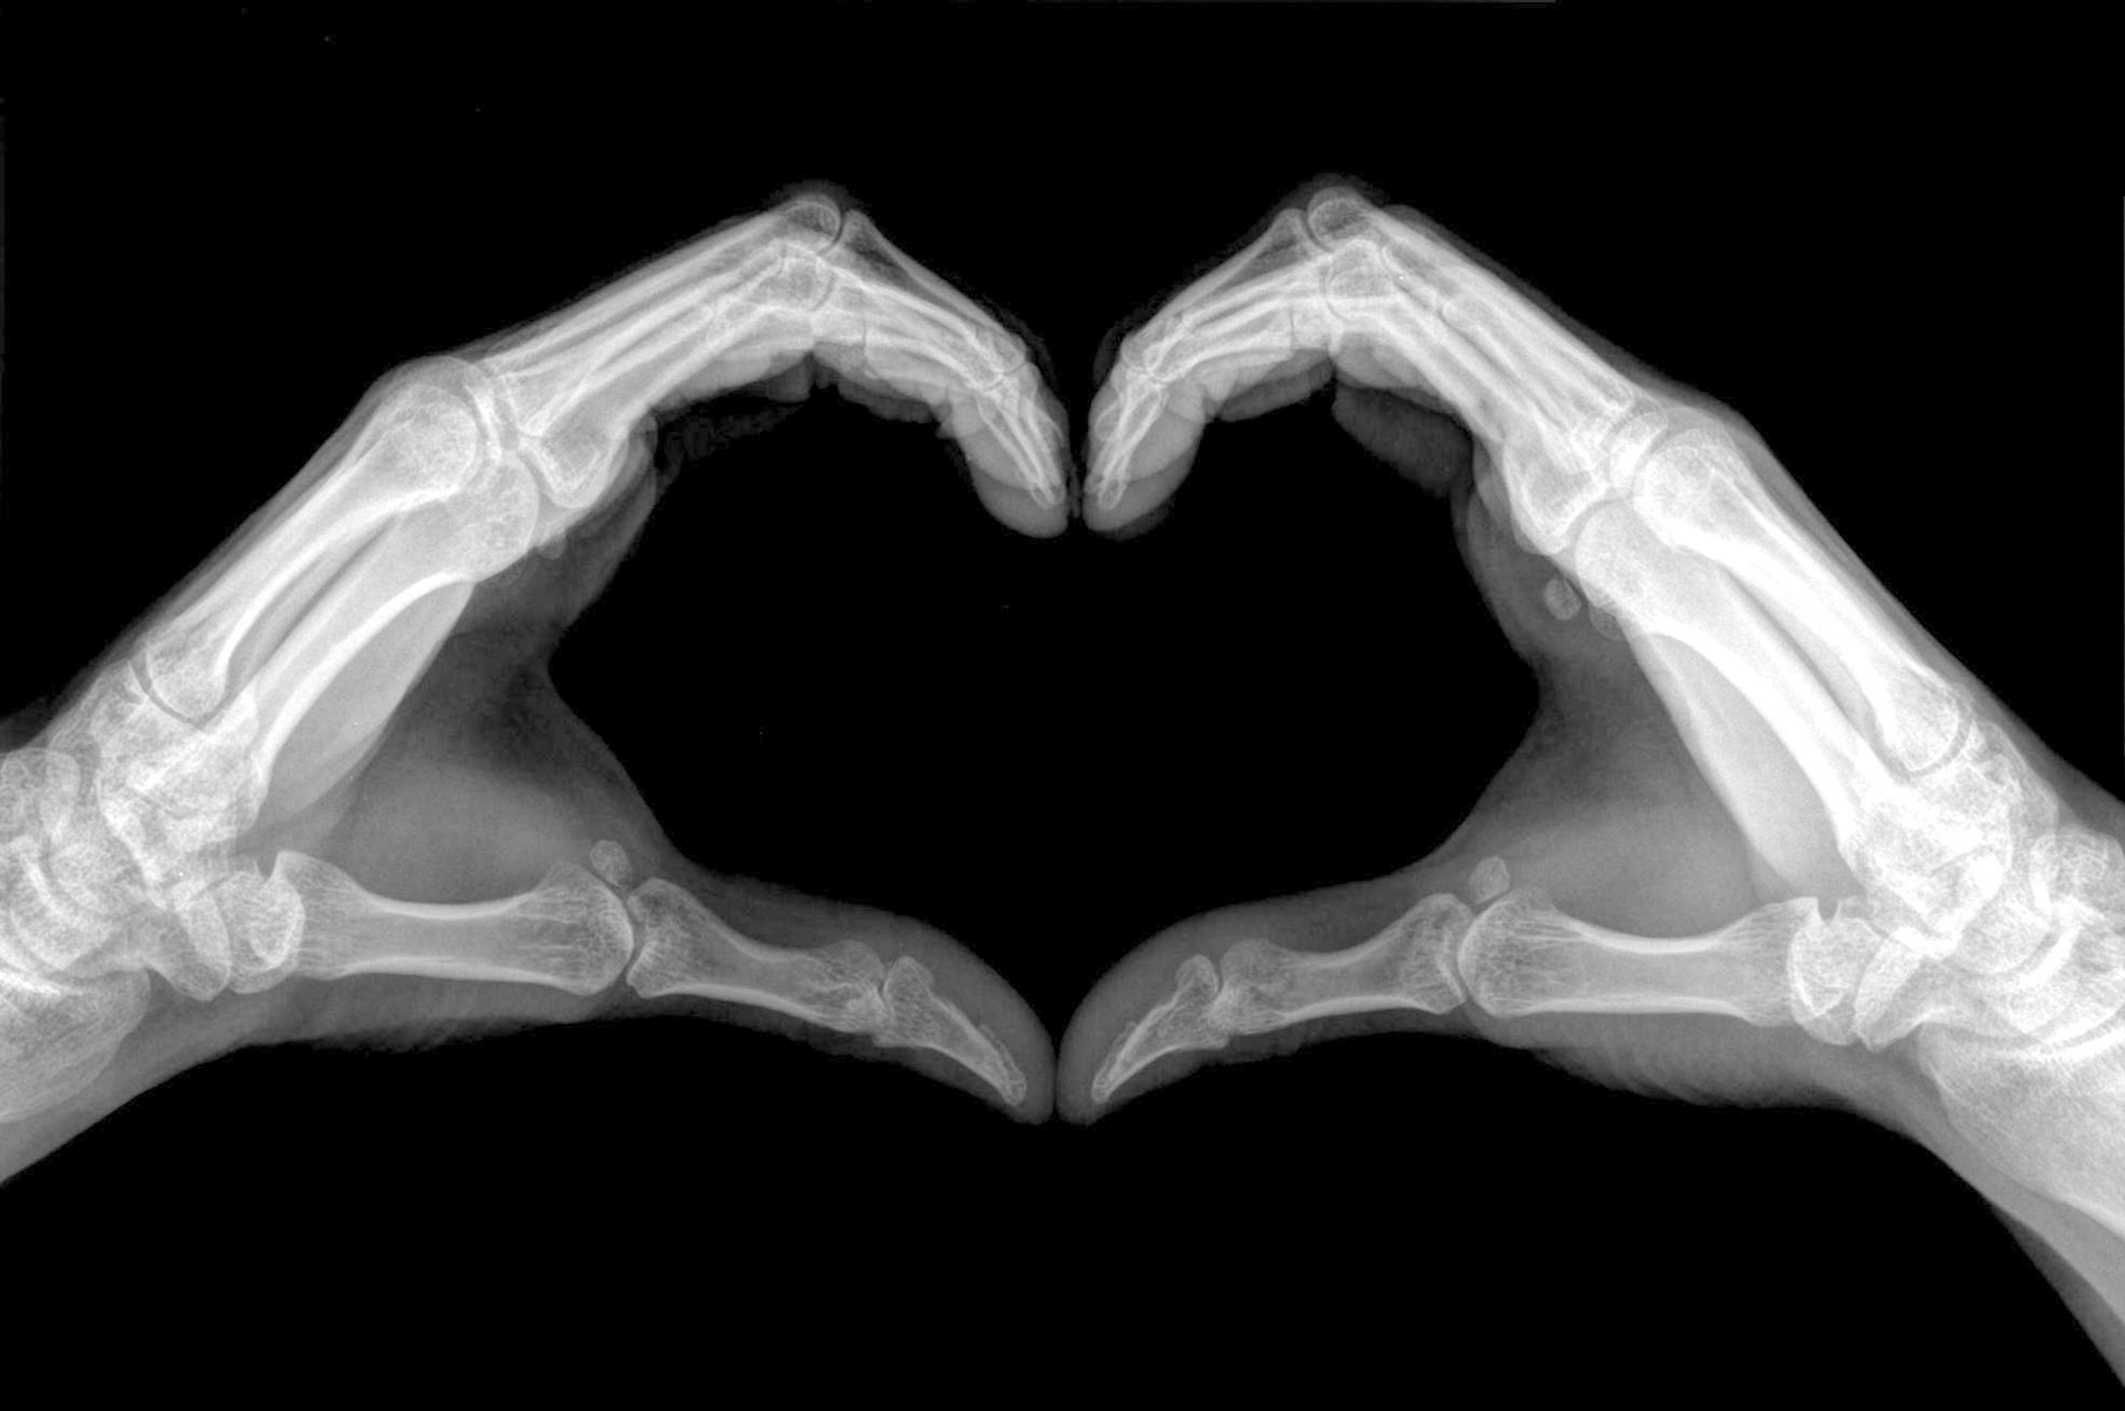 x-ray image of hands shows heart sign.